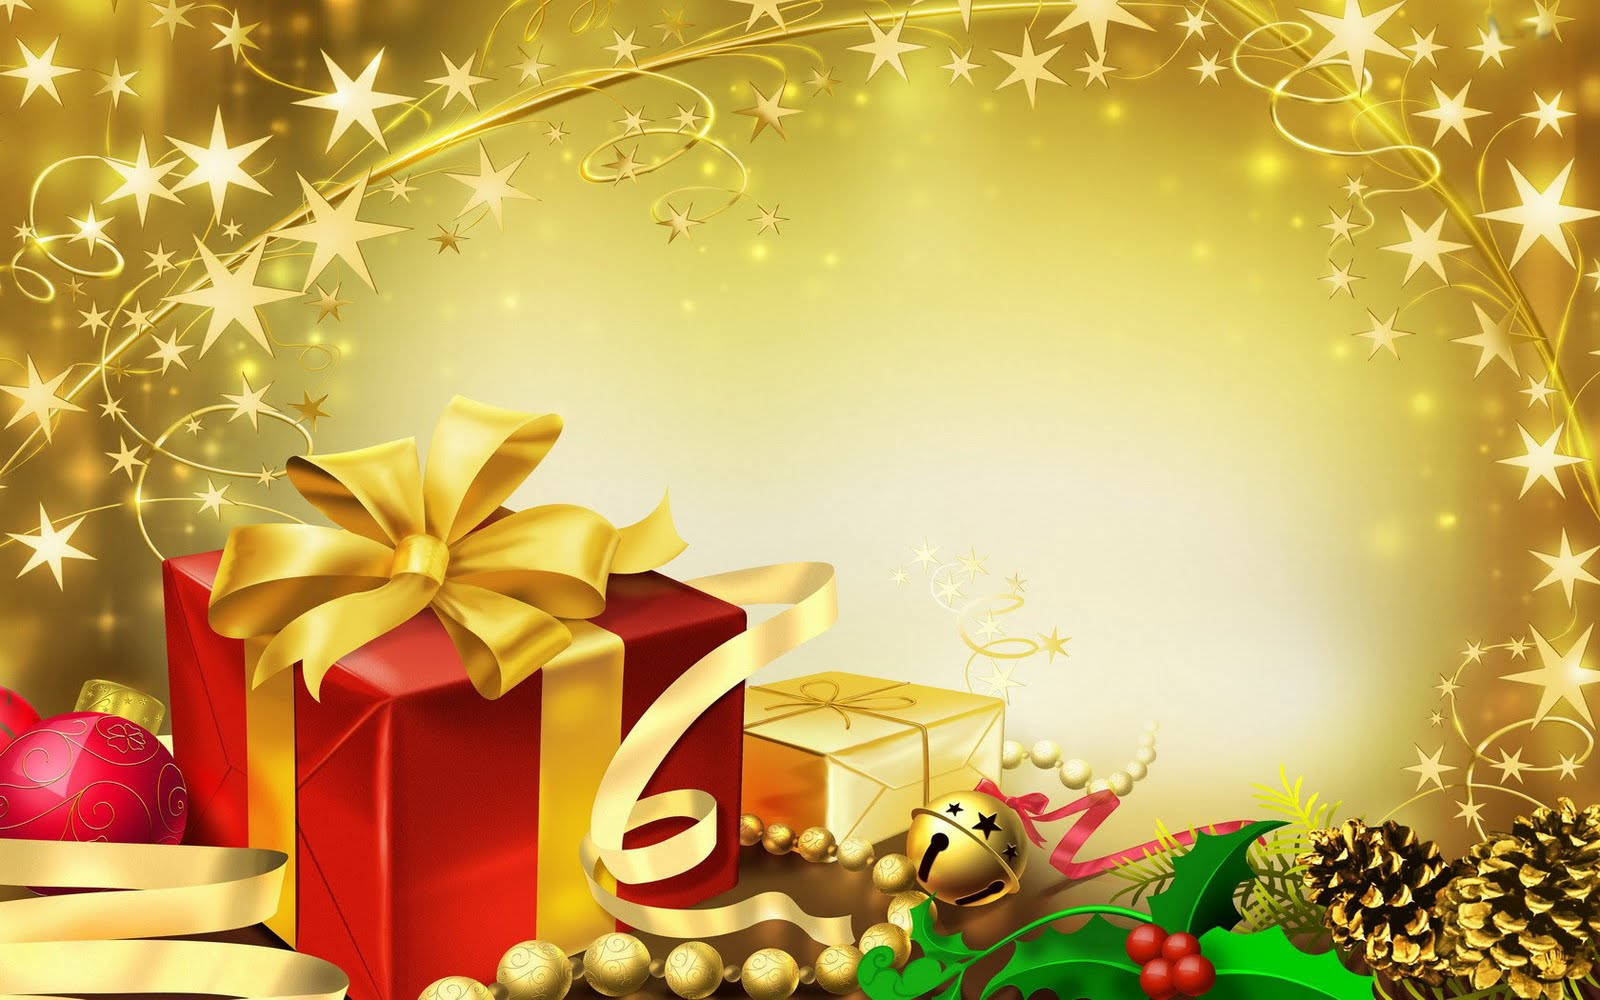 2014 Latest wallpapers download for christmas